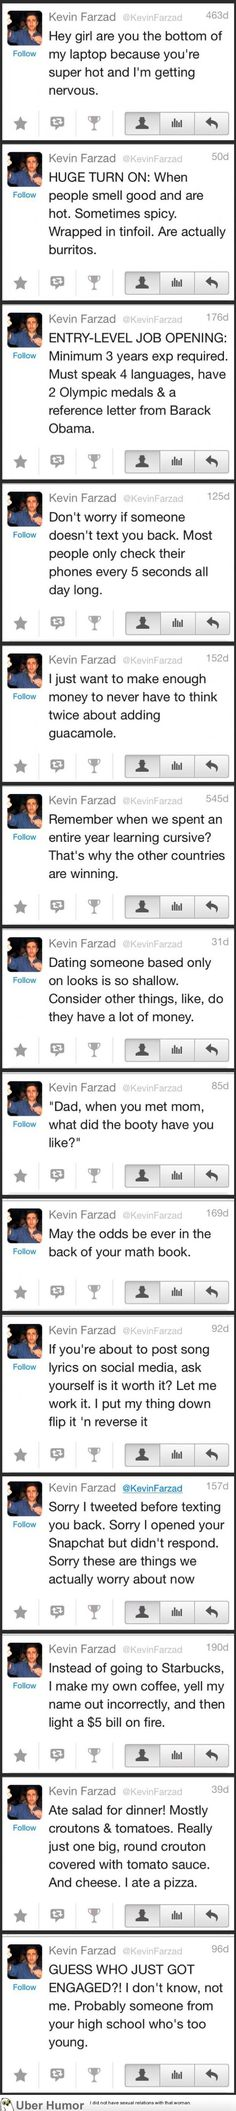 I don't know Kevin Farzad, but I definitely want to